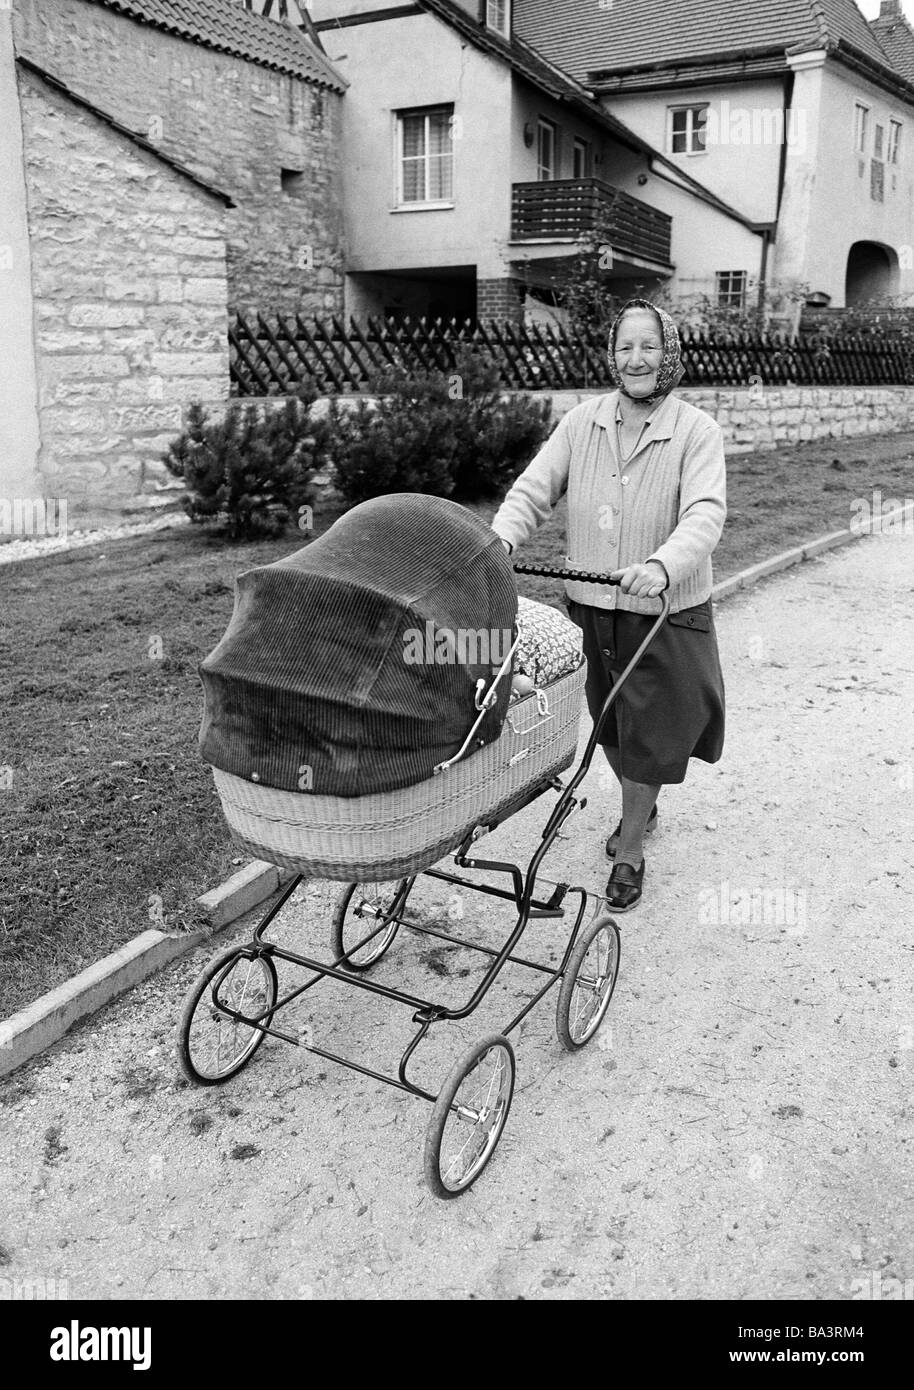 Eighties, black and white photo, people, elder people, older woman walking with a buggy, waistcoat, skirt, kerchief, - Stock Image